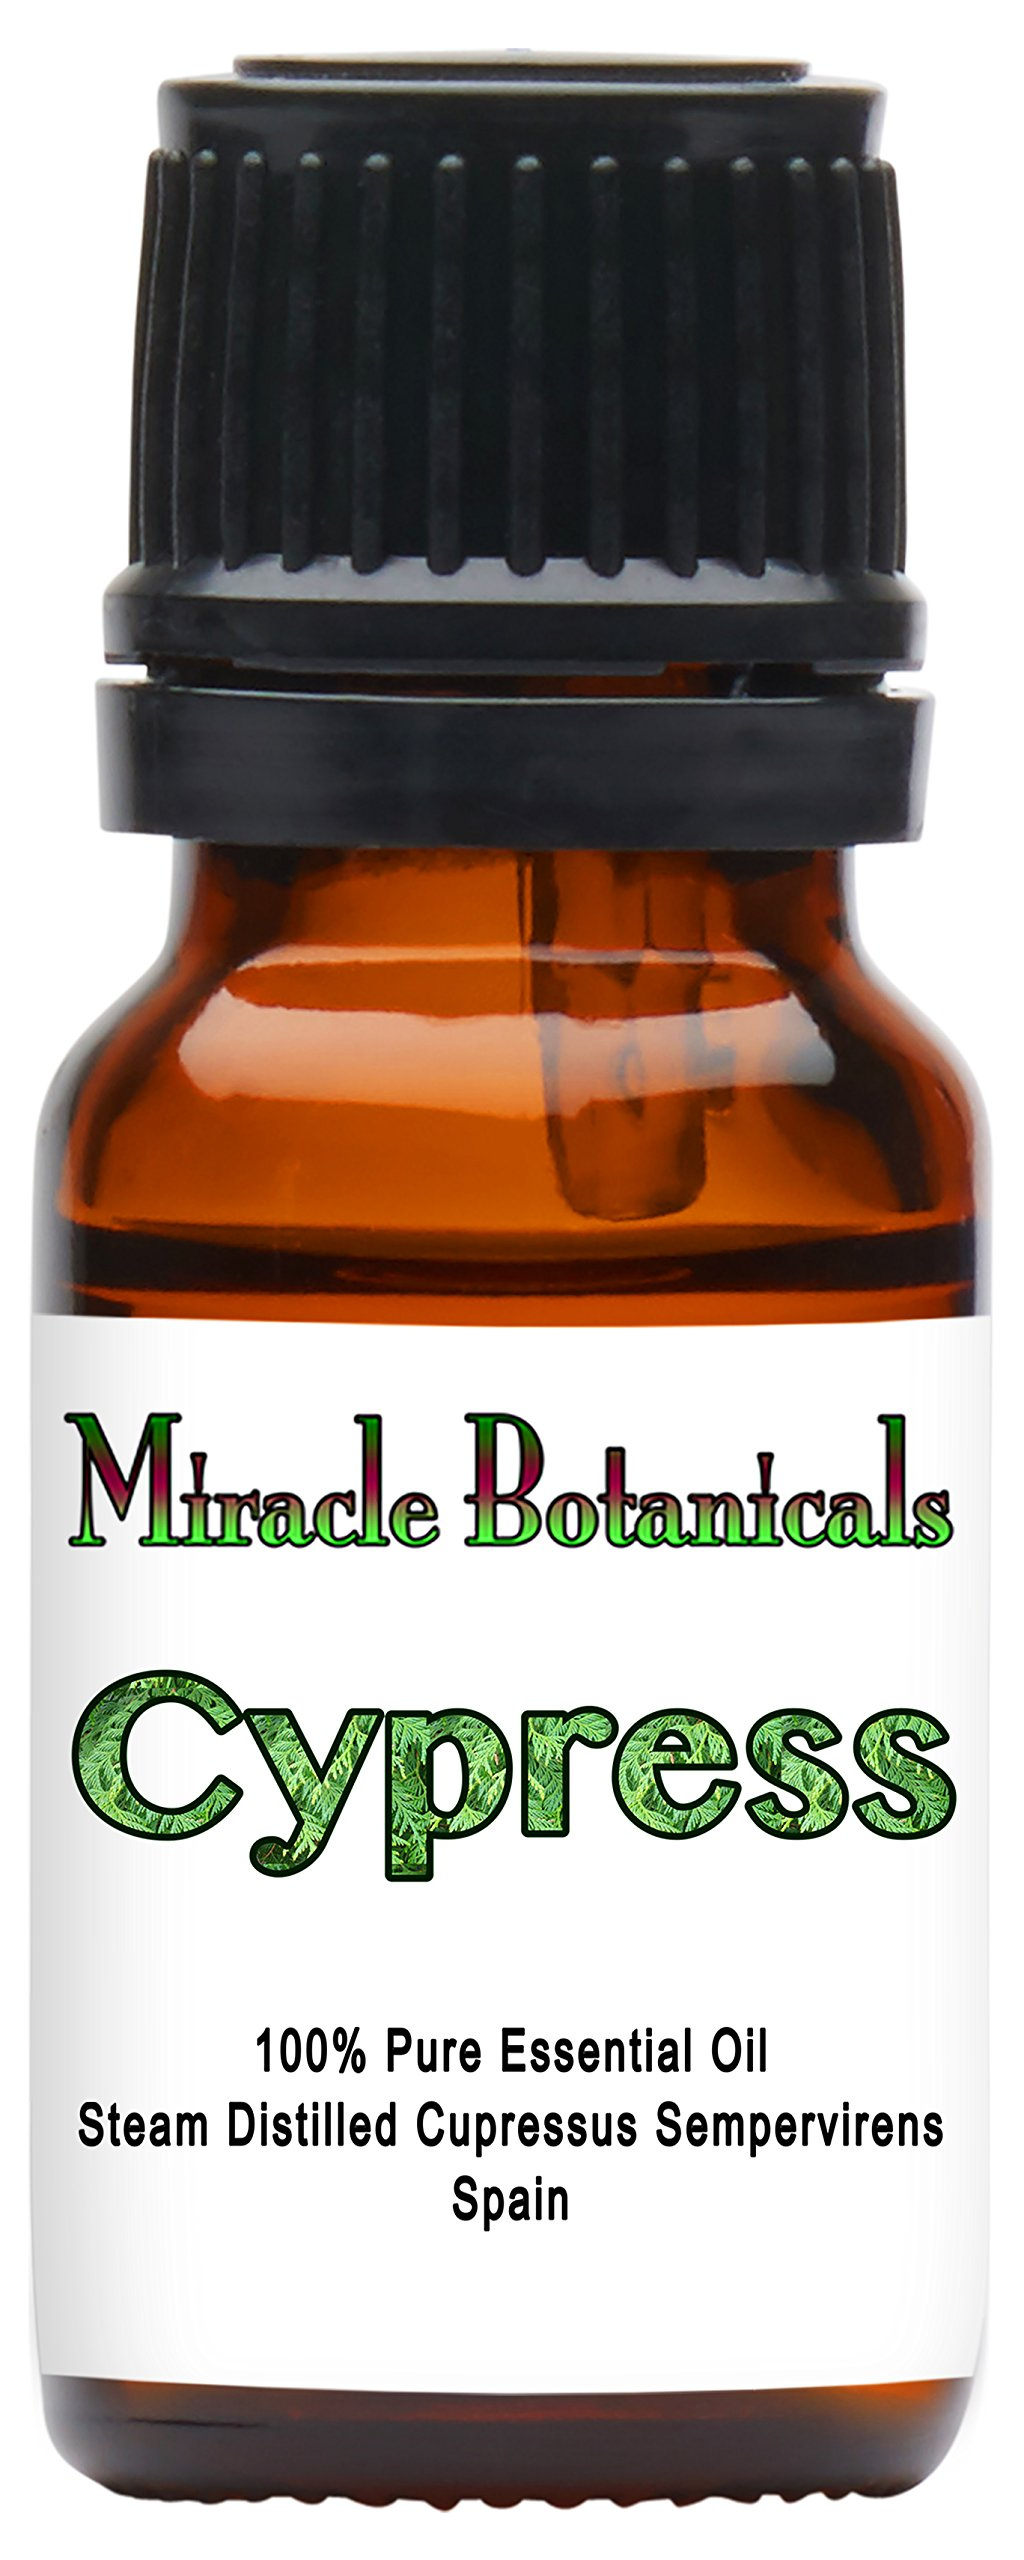 Miracle Botanicals Wildcrafted Cypress Essential Oil - 100% Pure Cupressus Sempervirens - 10ml or 30ml Sizes - Therapeutic Grade - 10ml